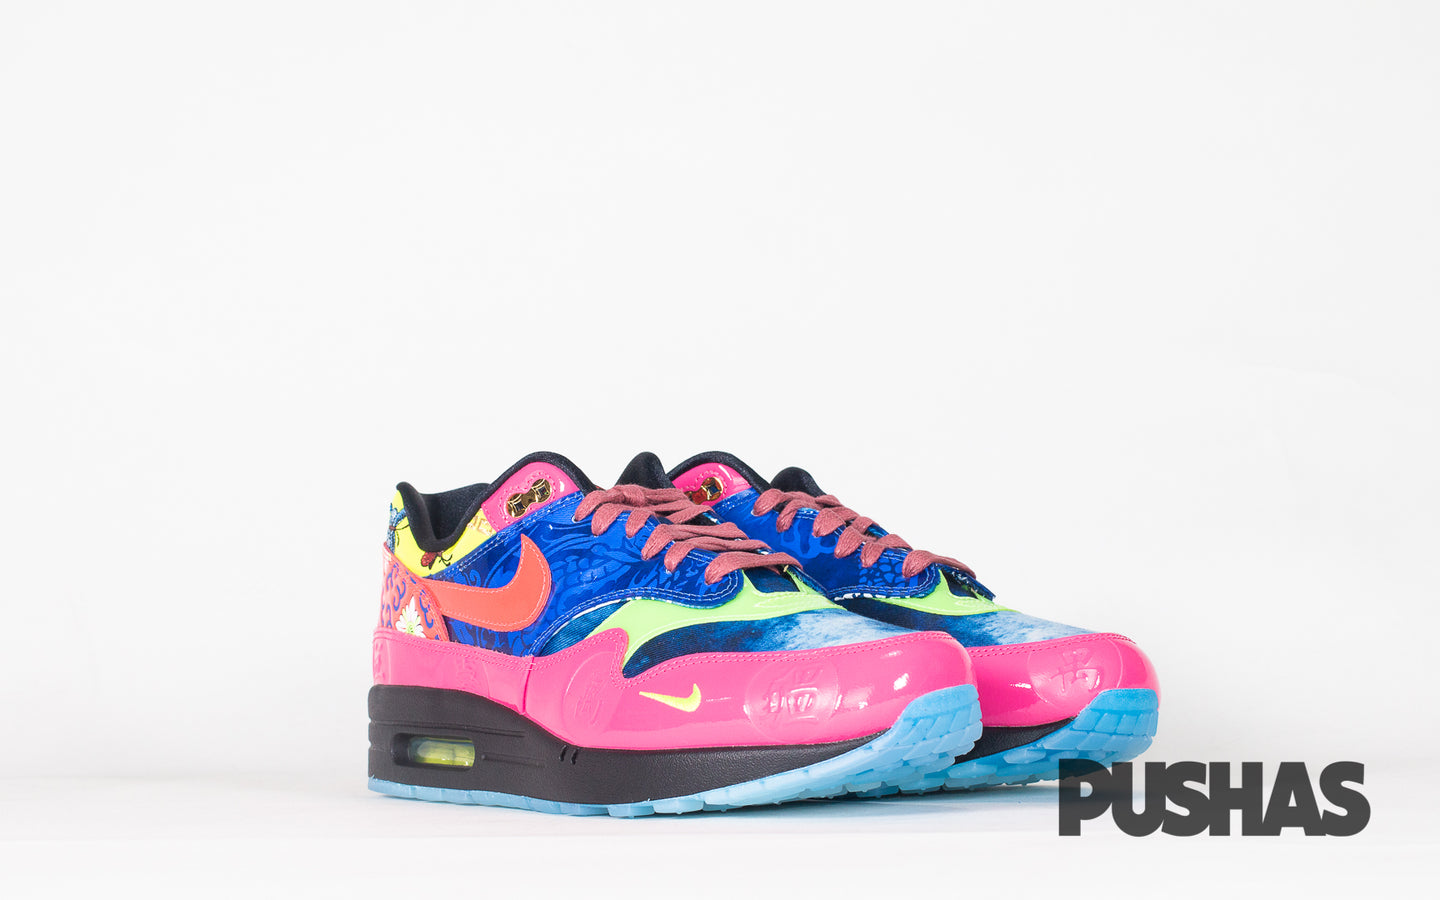 pushas-nike-Air-Max-1-Chinese-New-Year-Longevity